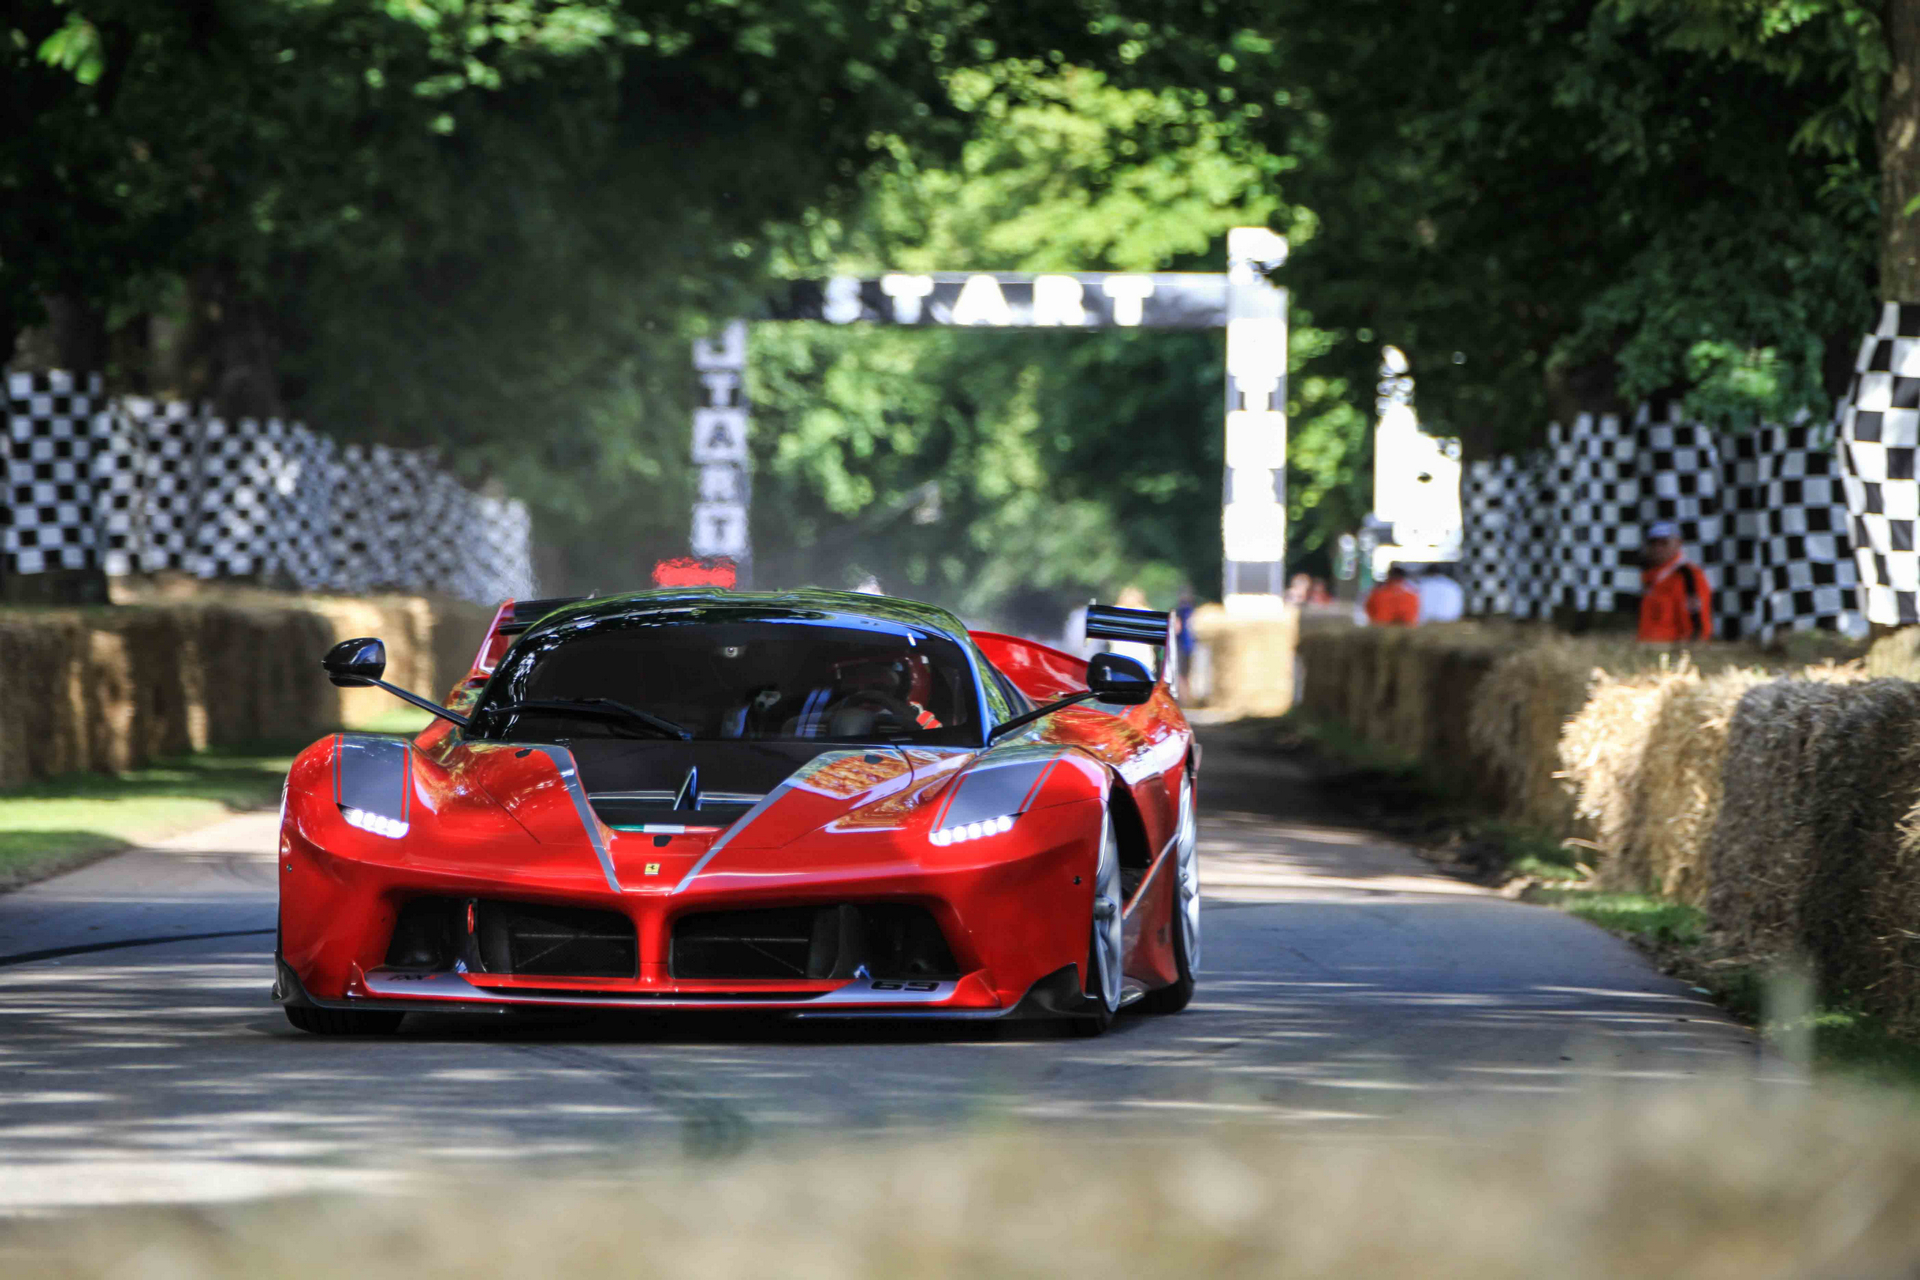 Ferrari Once Again the Fan's Favourite © Fiat Chrysler Automobiles N.V.